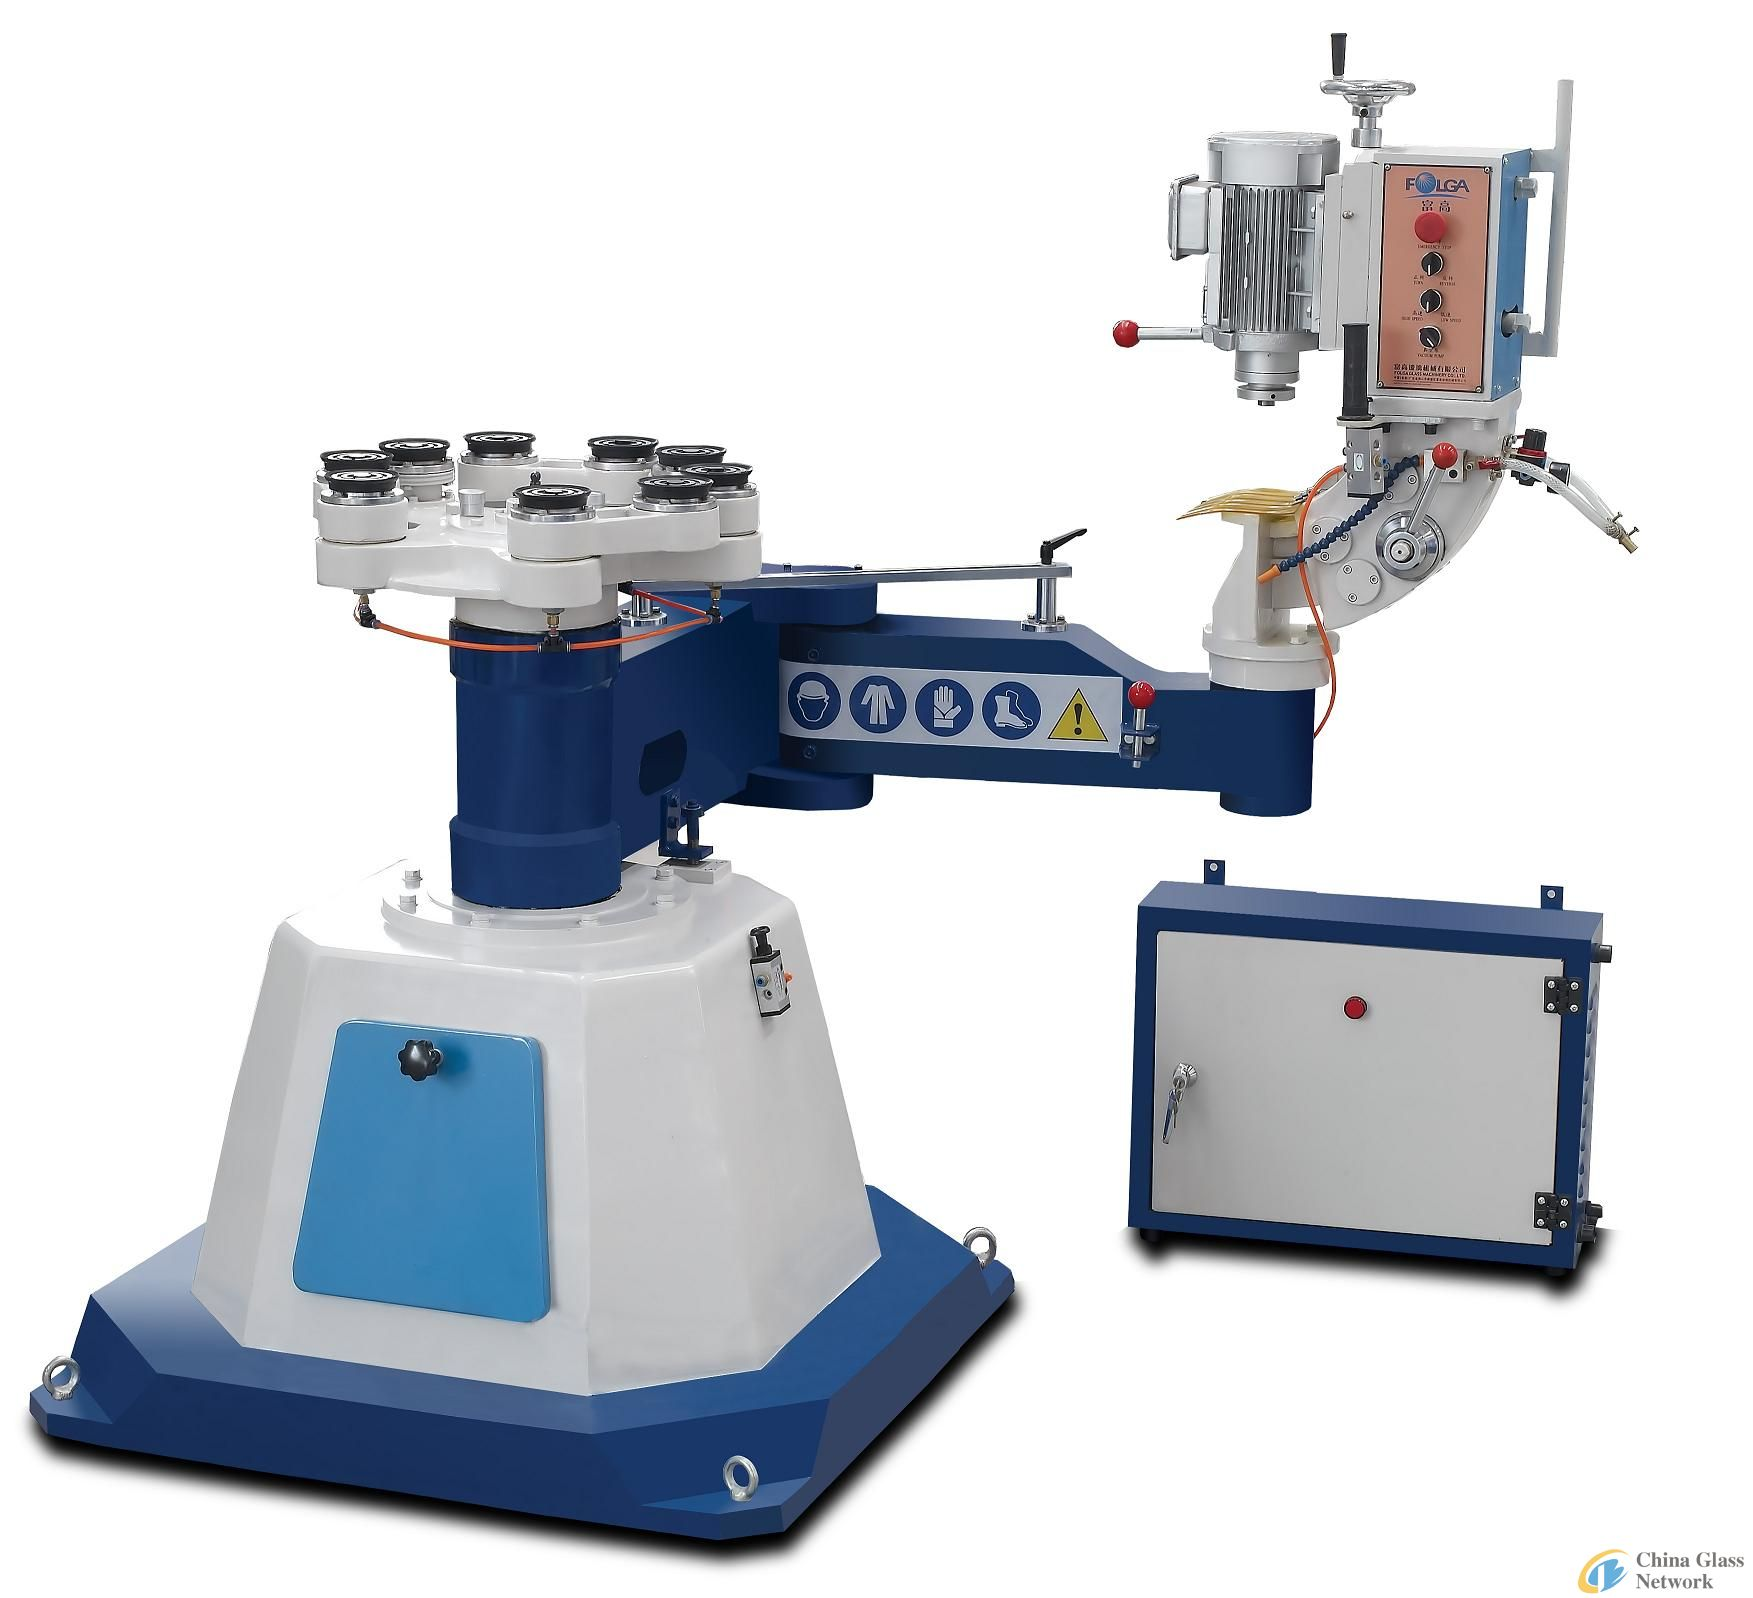 FA1-6 Irregular Glass Edging Grinding Machine